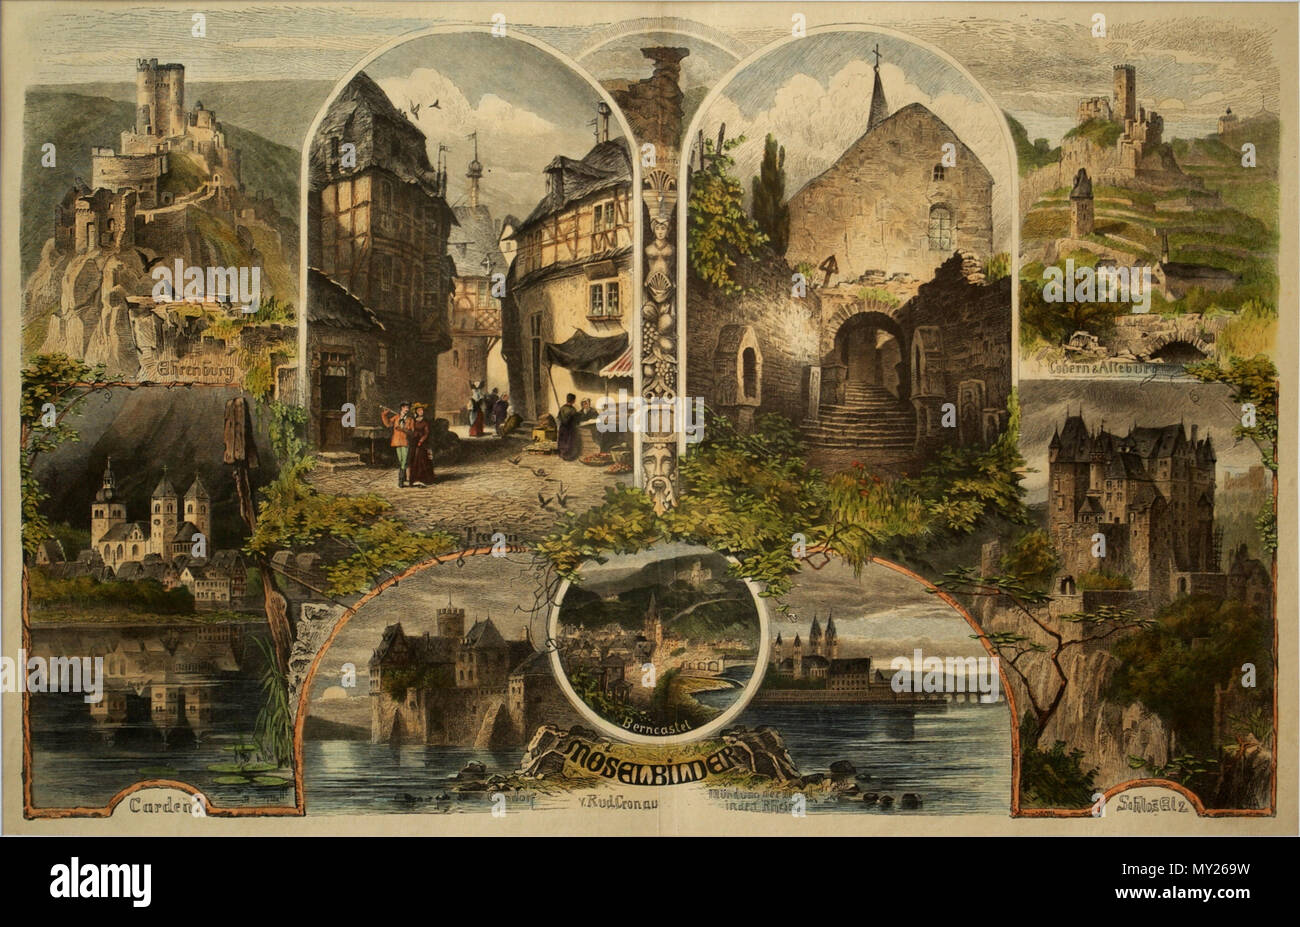 . English: Pictures of the mosel Deutsch: Moselbilder . 1874. Rud. Cronau 371 Mosel BW 1 - Stock Image